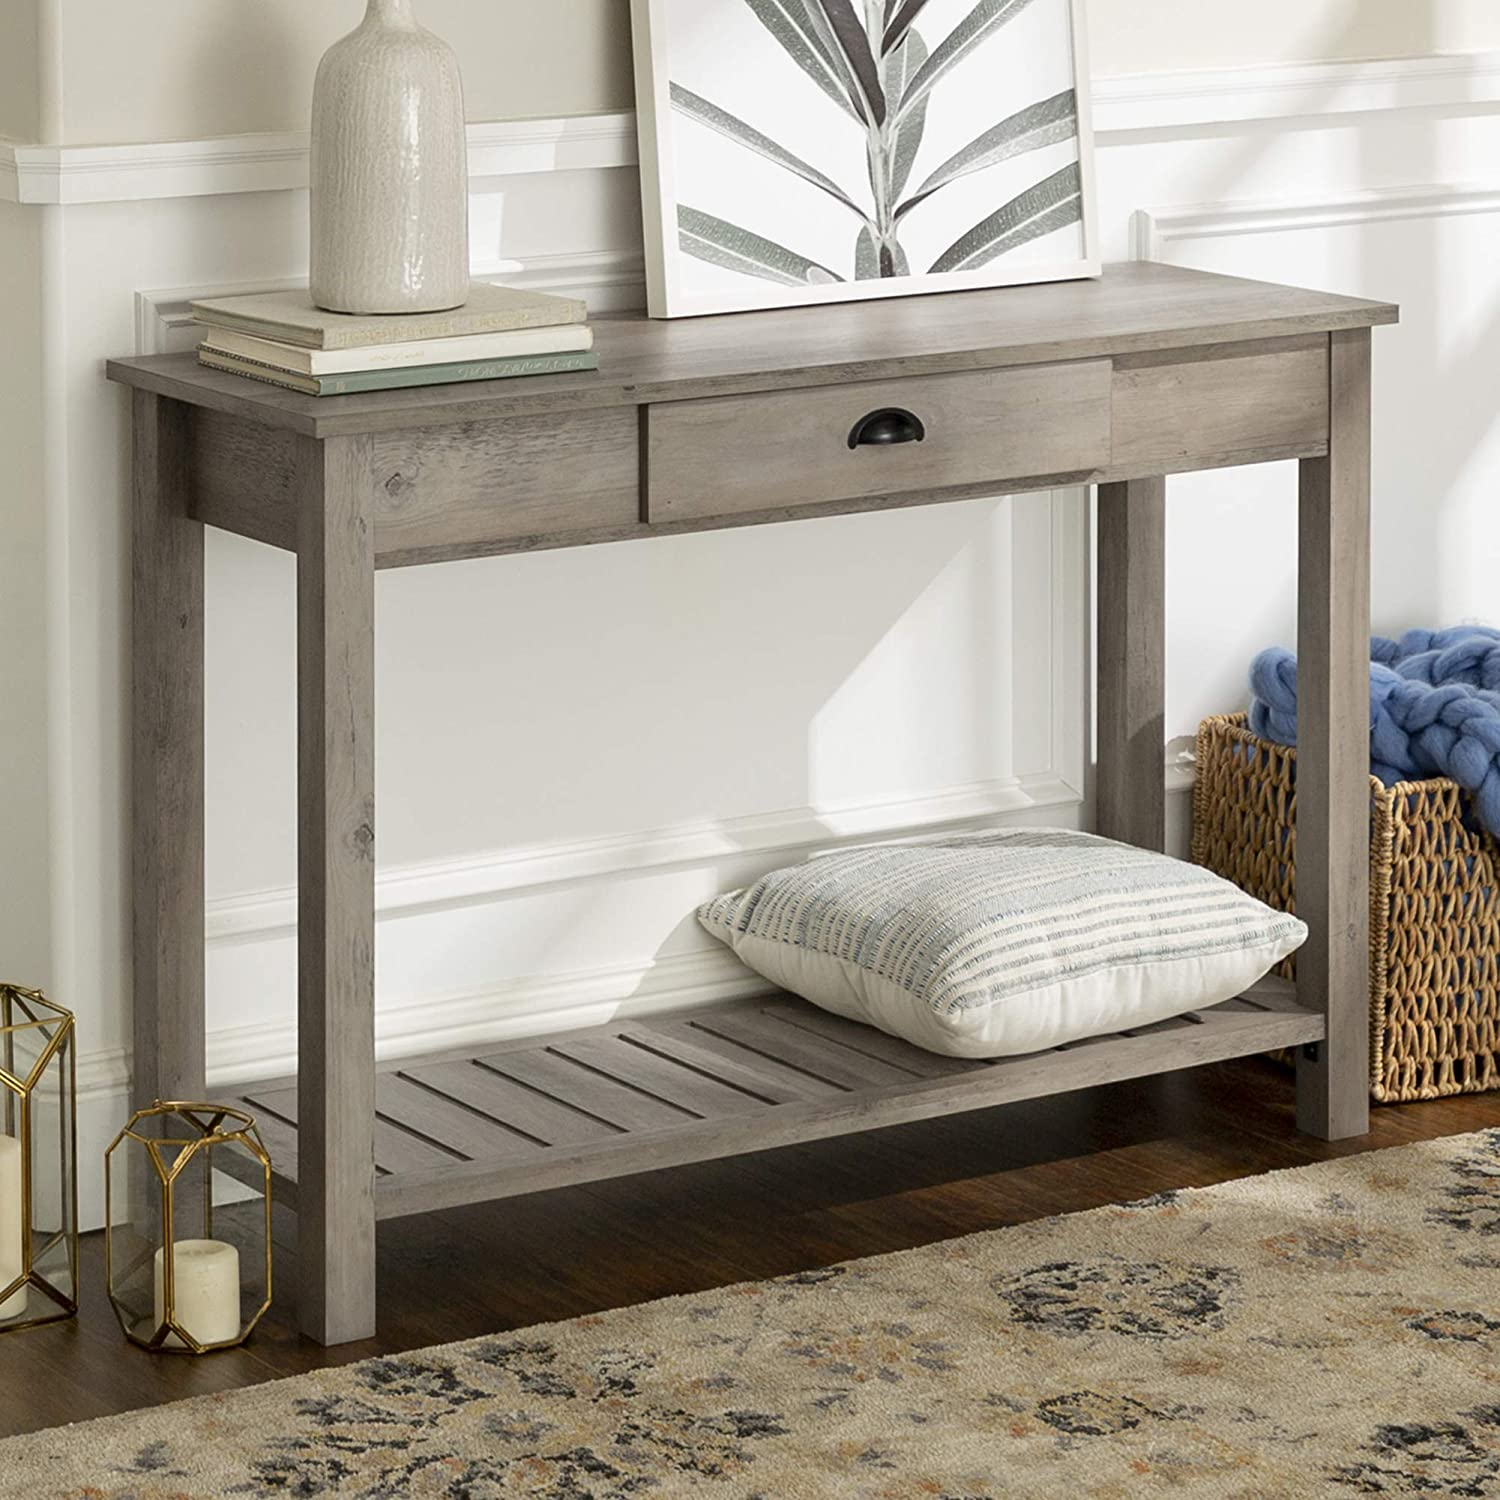 WE Furniture AZF48CYETGW Country Style entry Console Table, Grey Wash